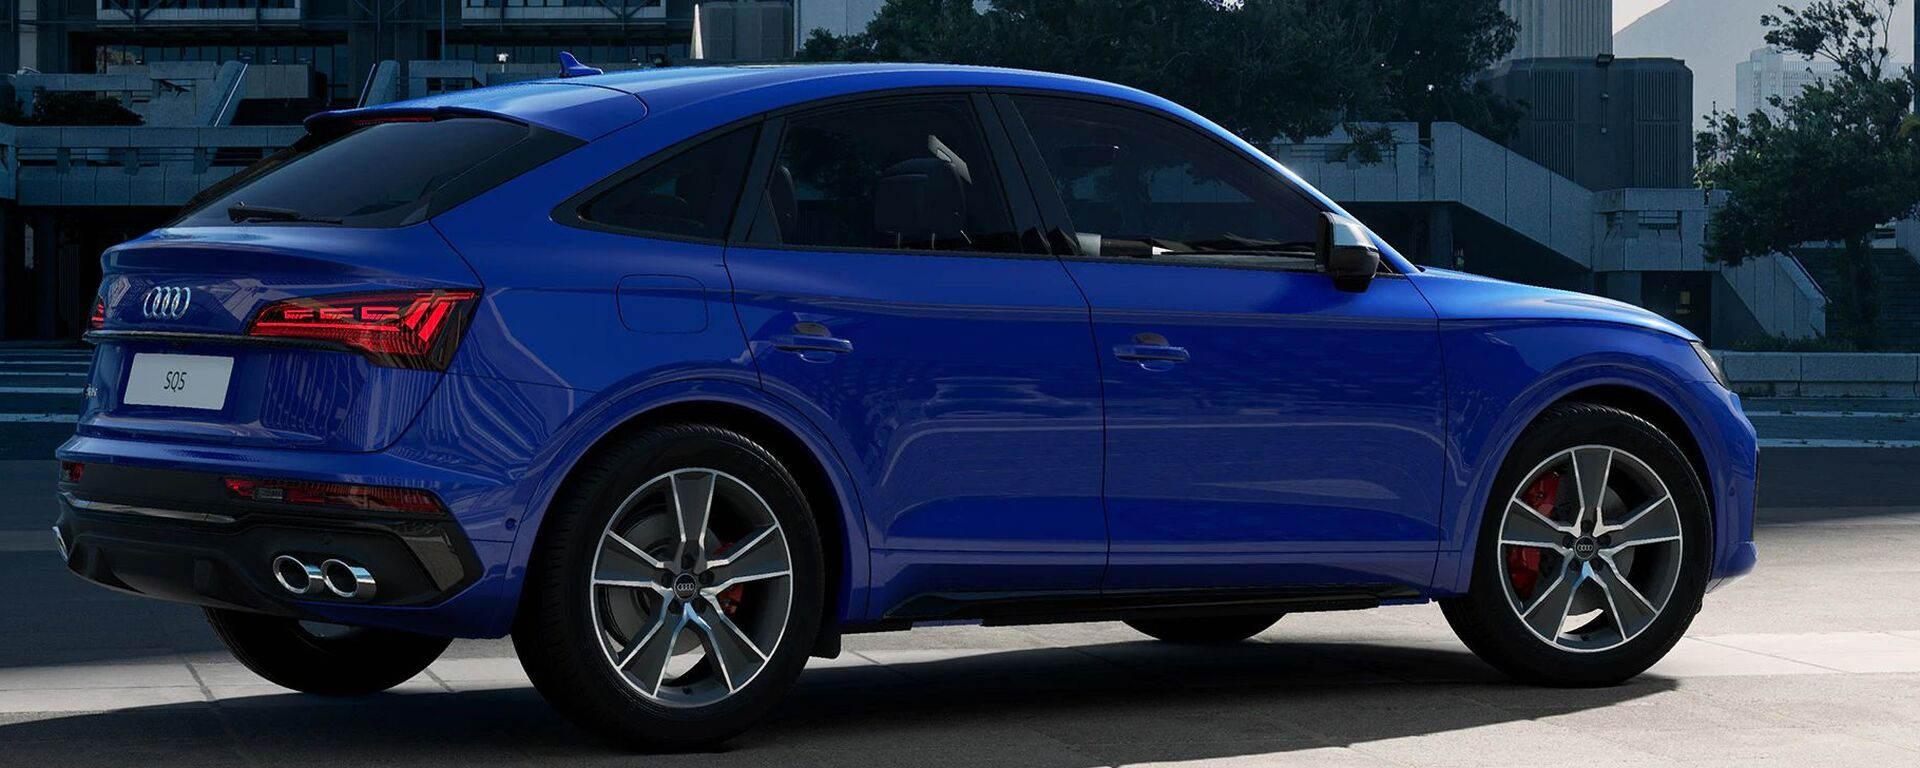 Audi SQ5 Sportback 2021 in Ultrablau Metallic